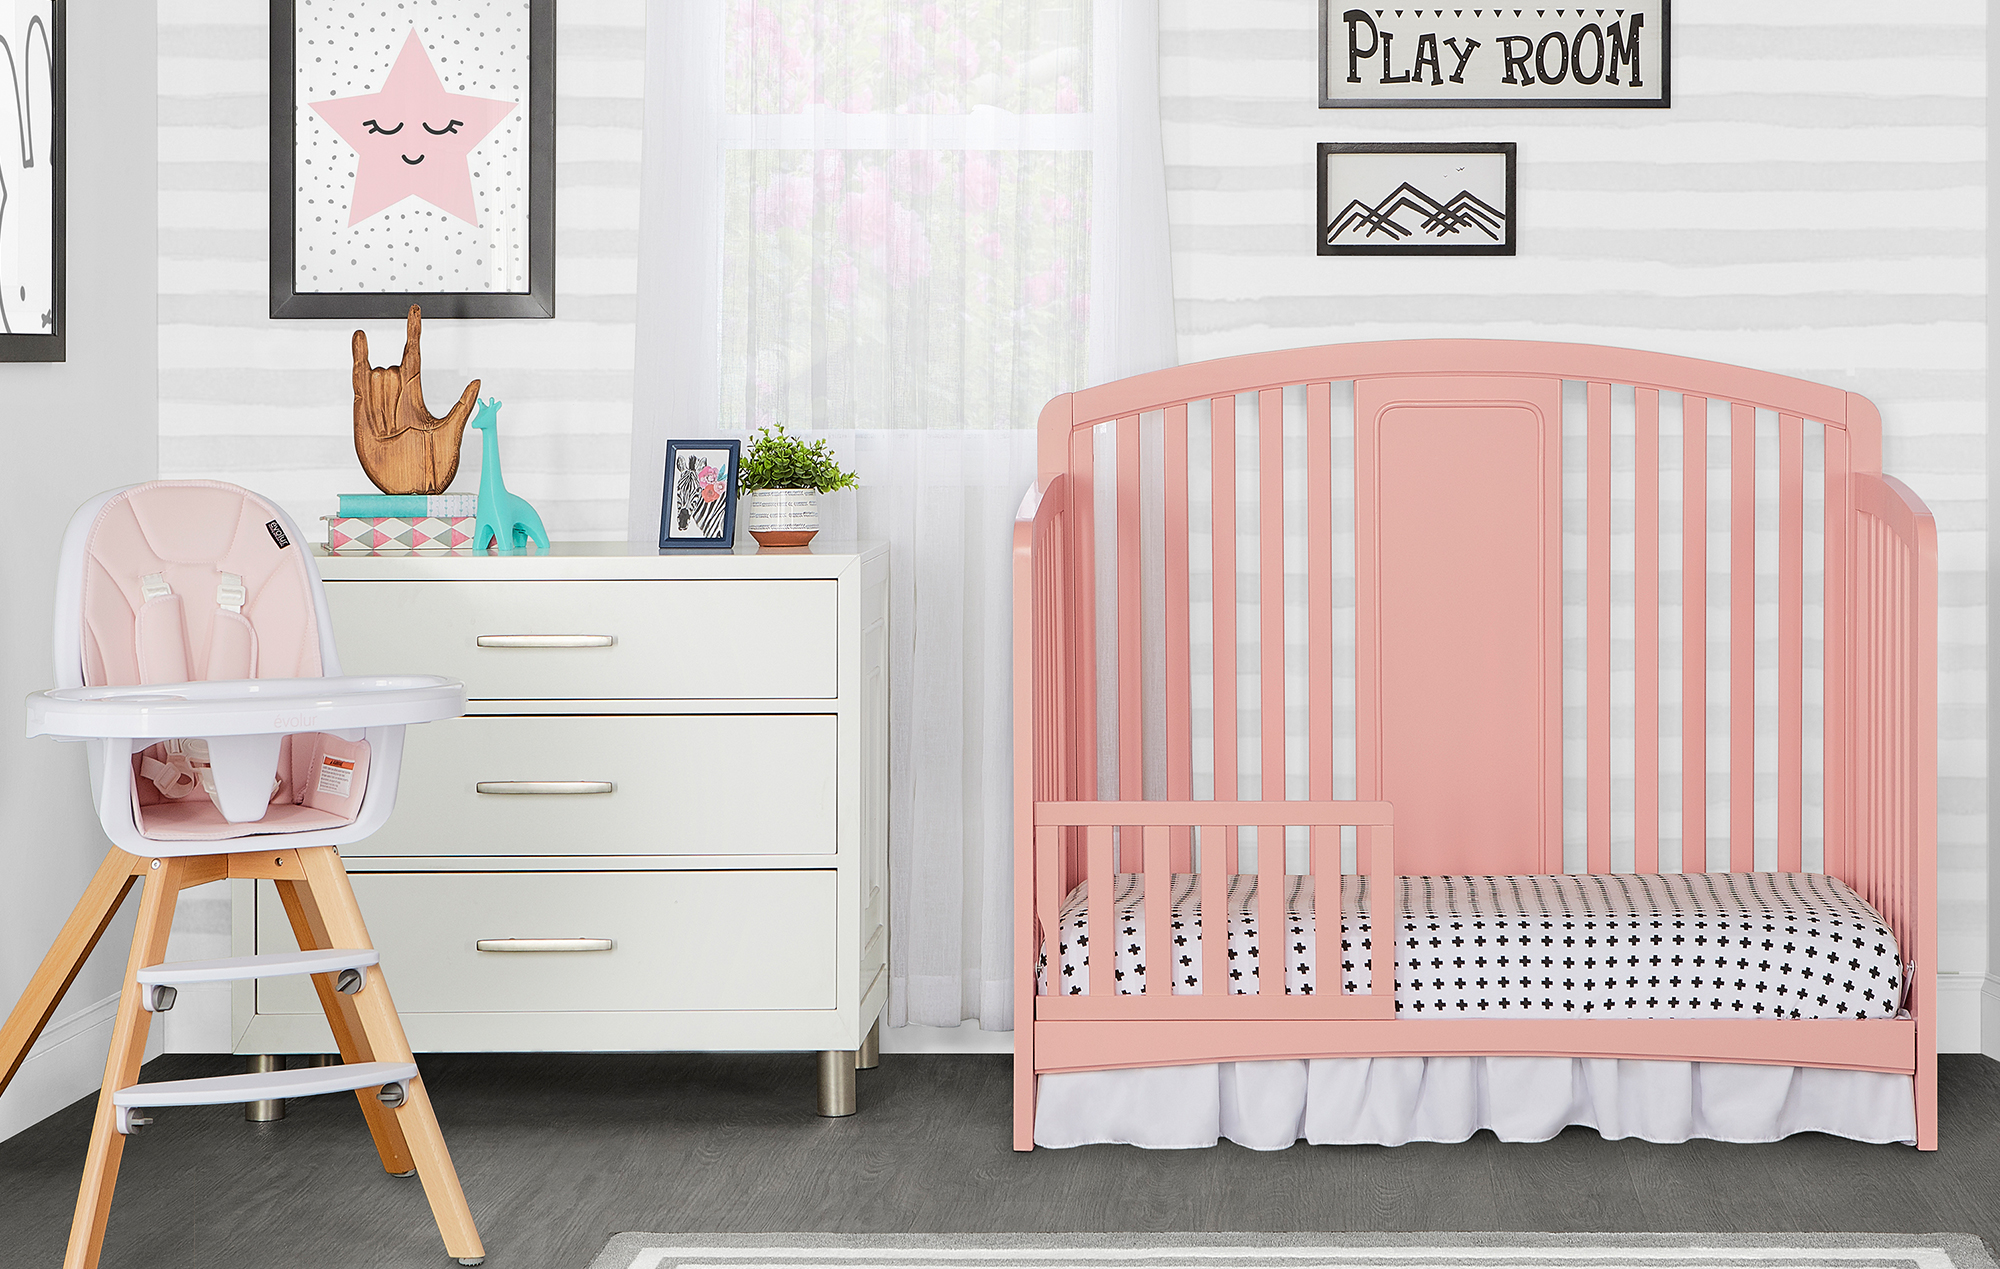 775-DPINK Arc Toddler Bed Room Shot